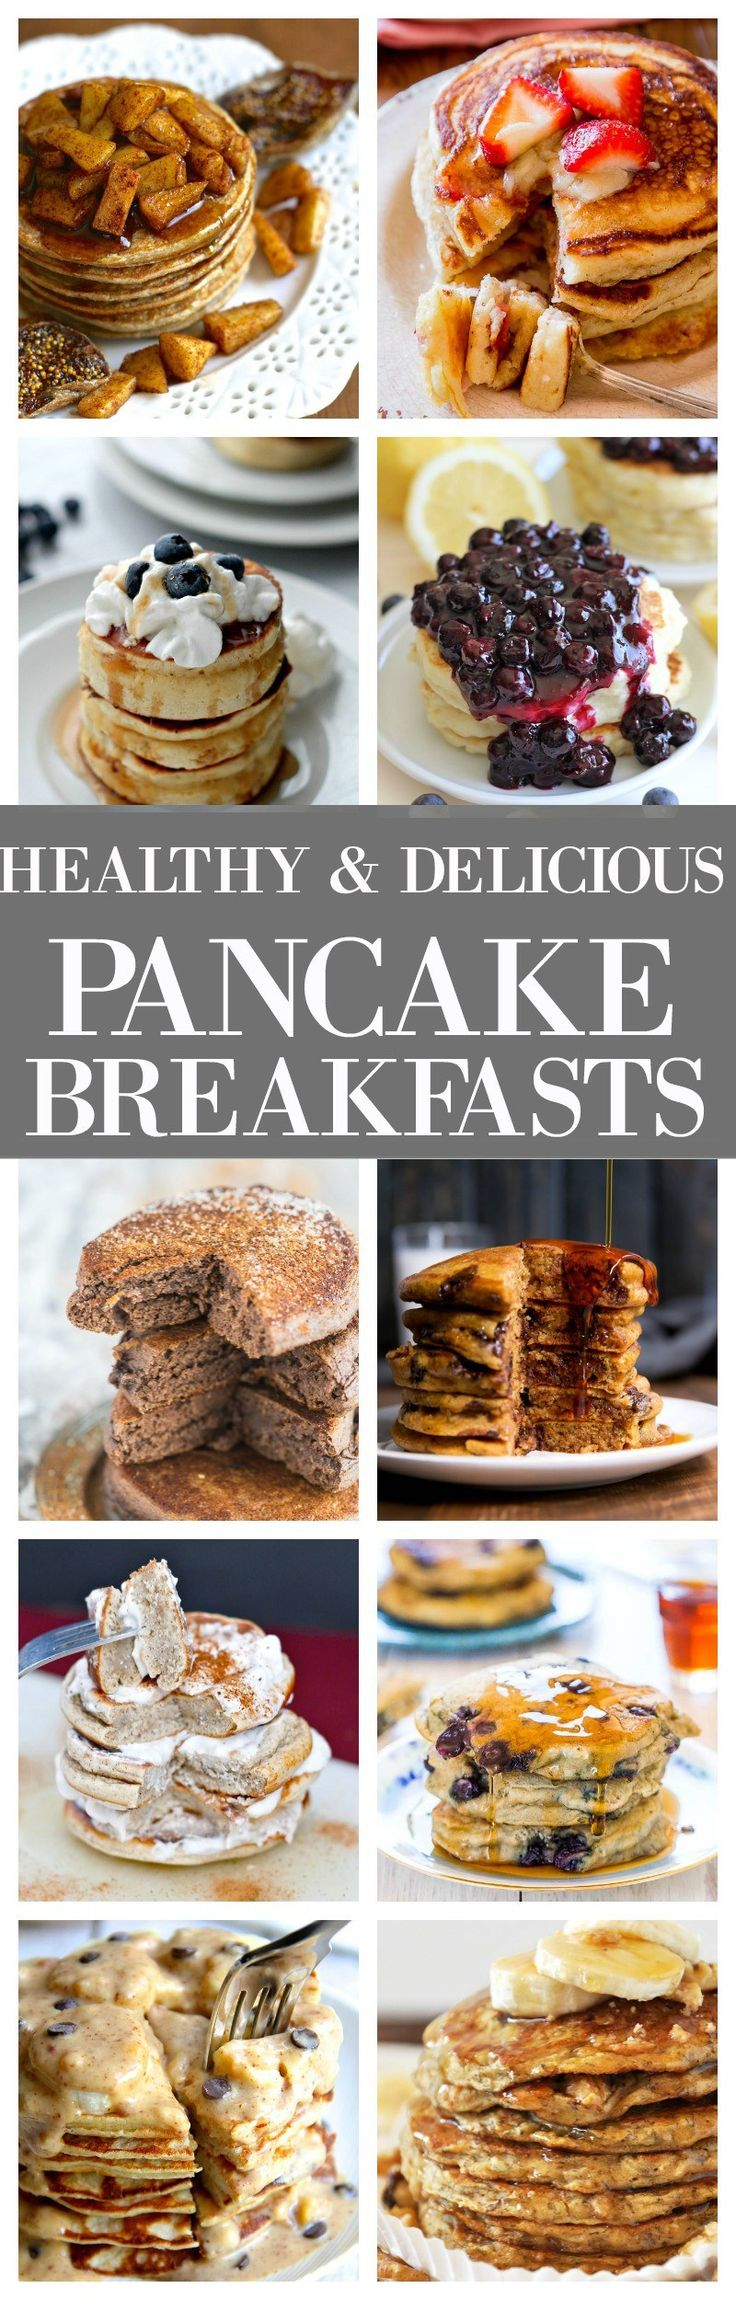 15 Healthy and Delicious Pancake Breakfast Recipes